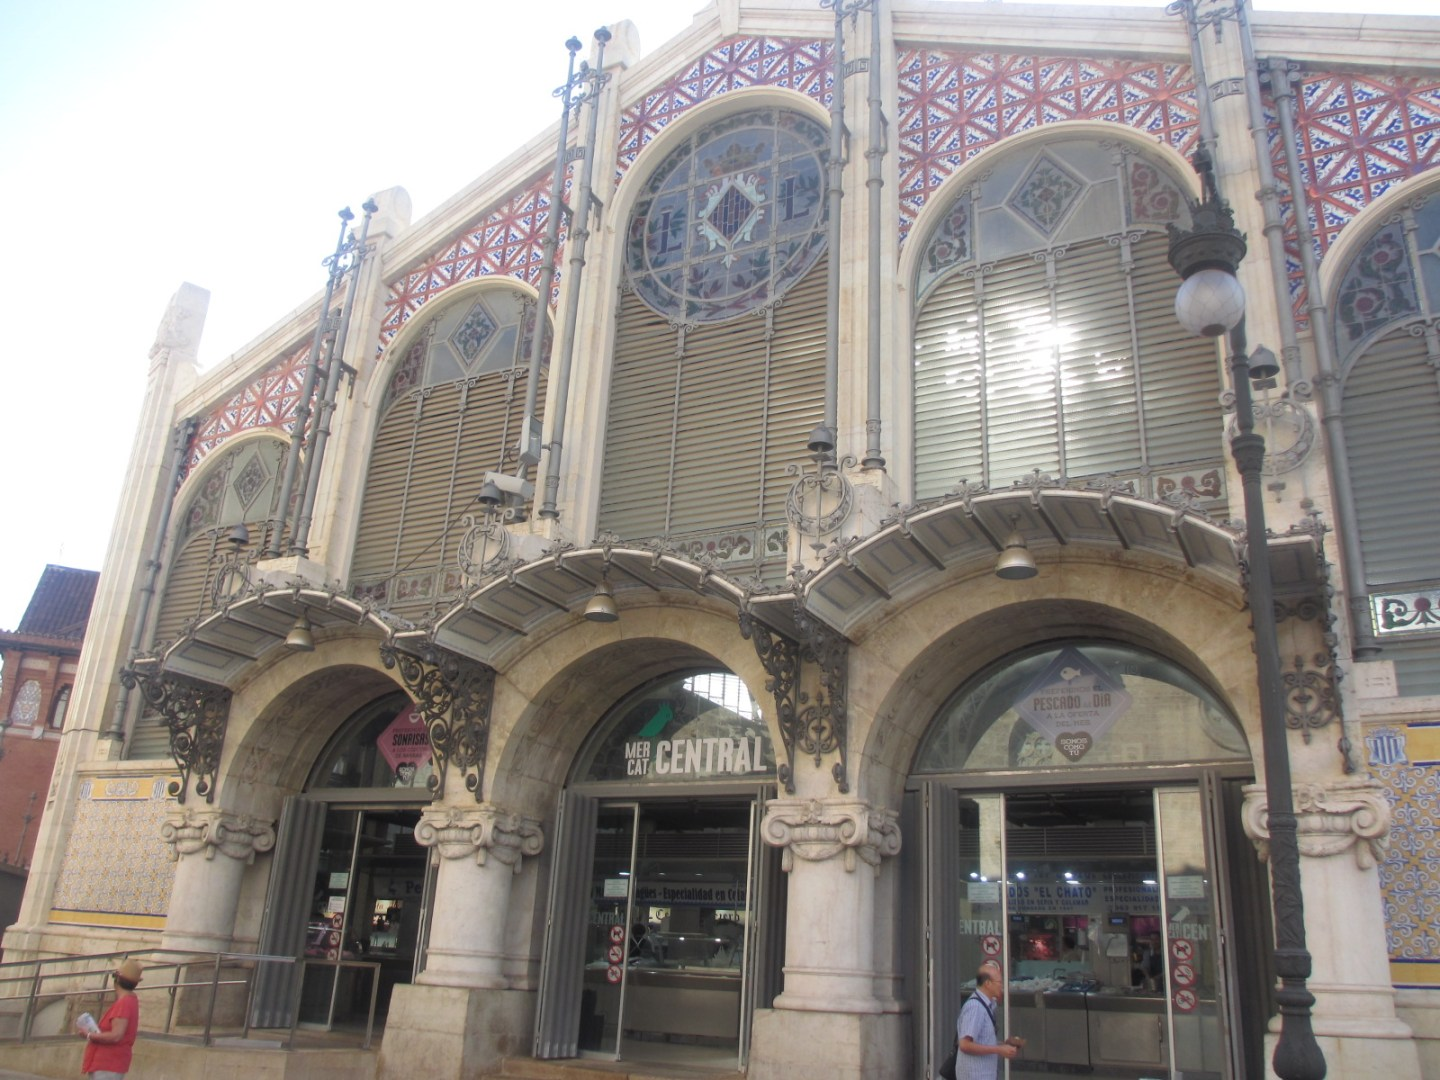 The Mercat Central food market in Valencia